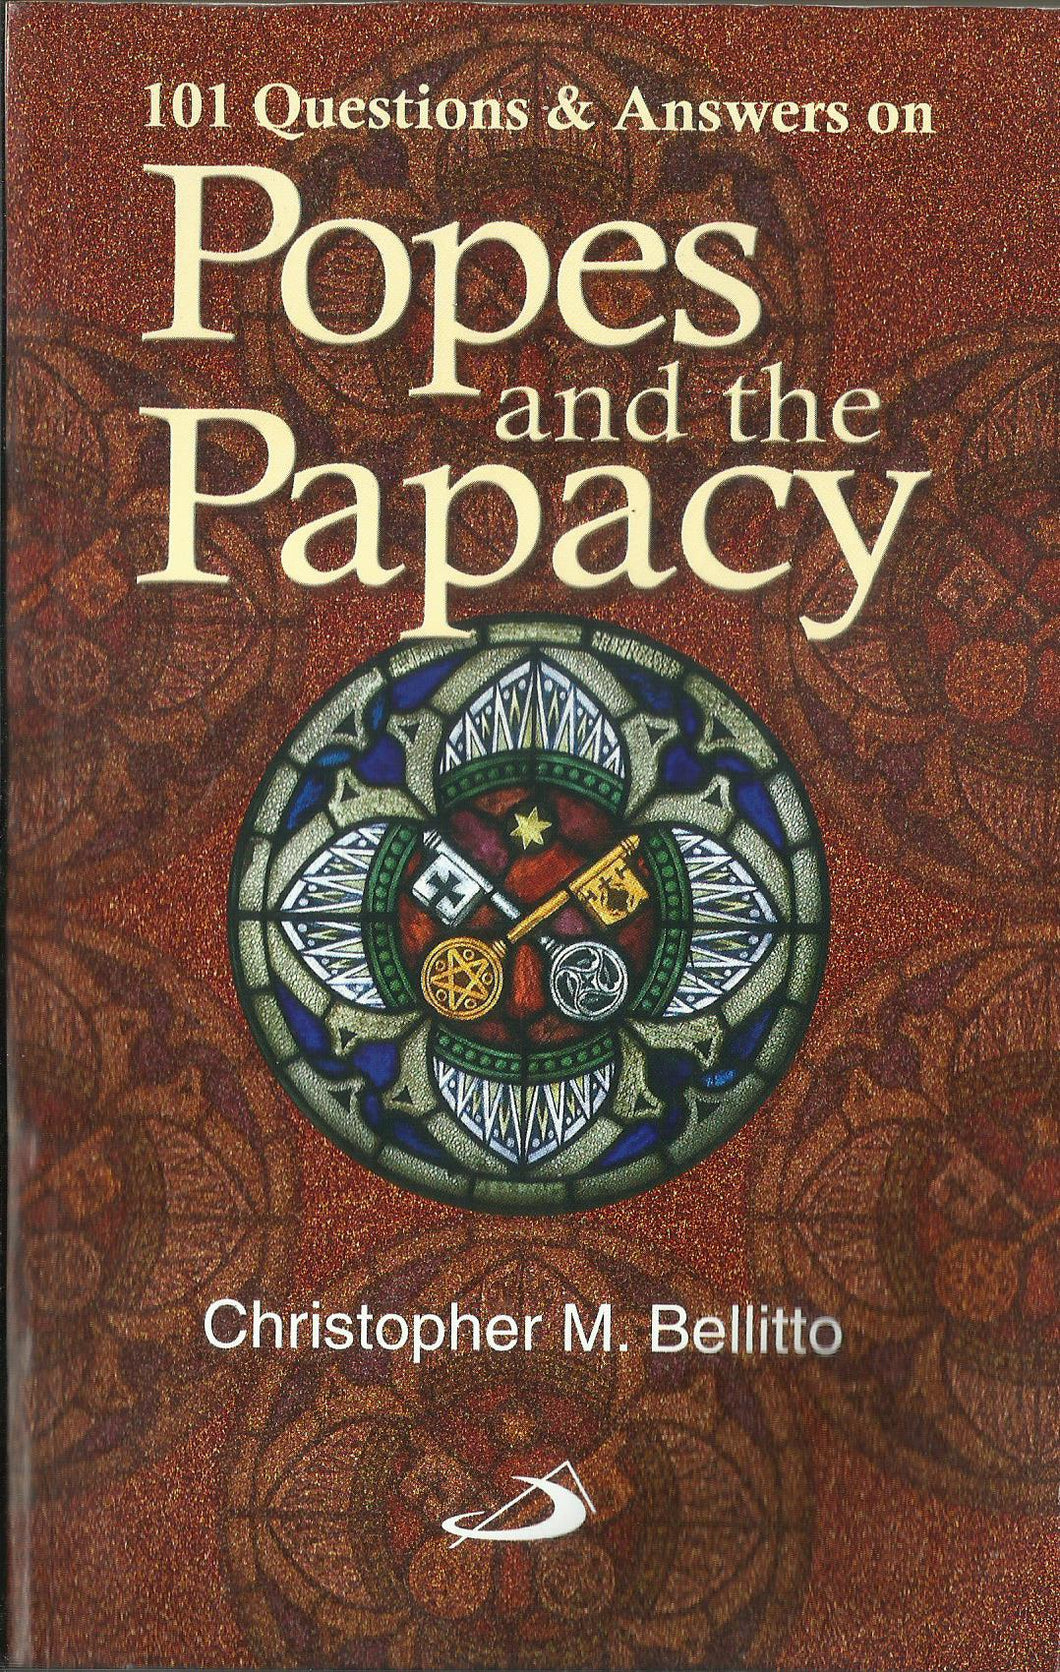 101 QUESTIONS & ANSWERS ON POPES AND THE PAPACY - sophiabuy